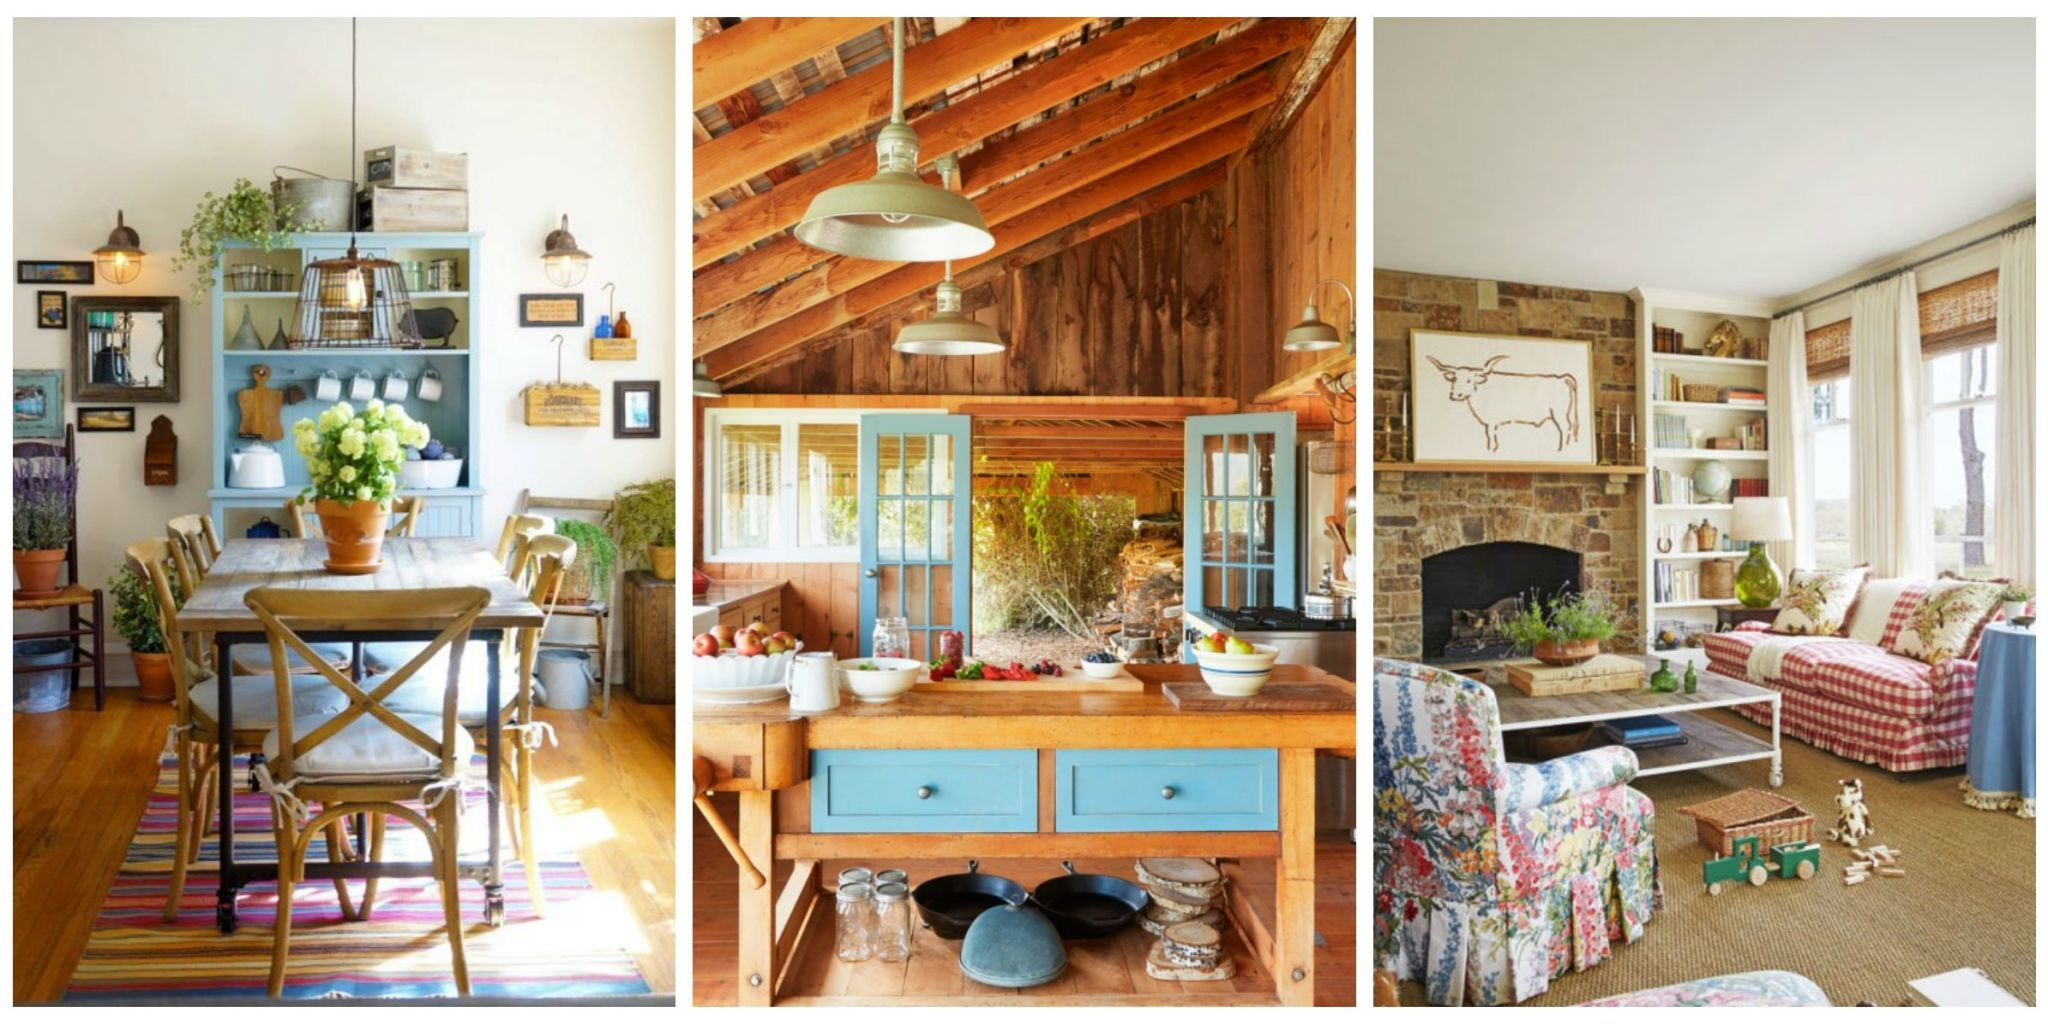 Exceptionnel We Never Tire Of Beautiful Farmhouse Decoru2014from Bedrooms To Kitchens, Take  A Look At These Simple And Rustic Rooms. Want More? See Our Best Country ...